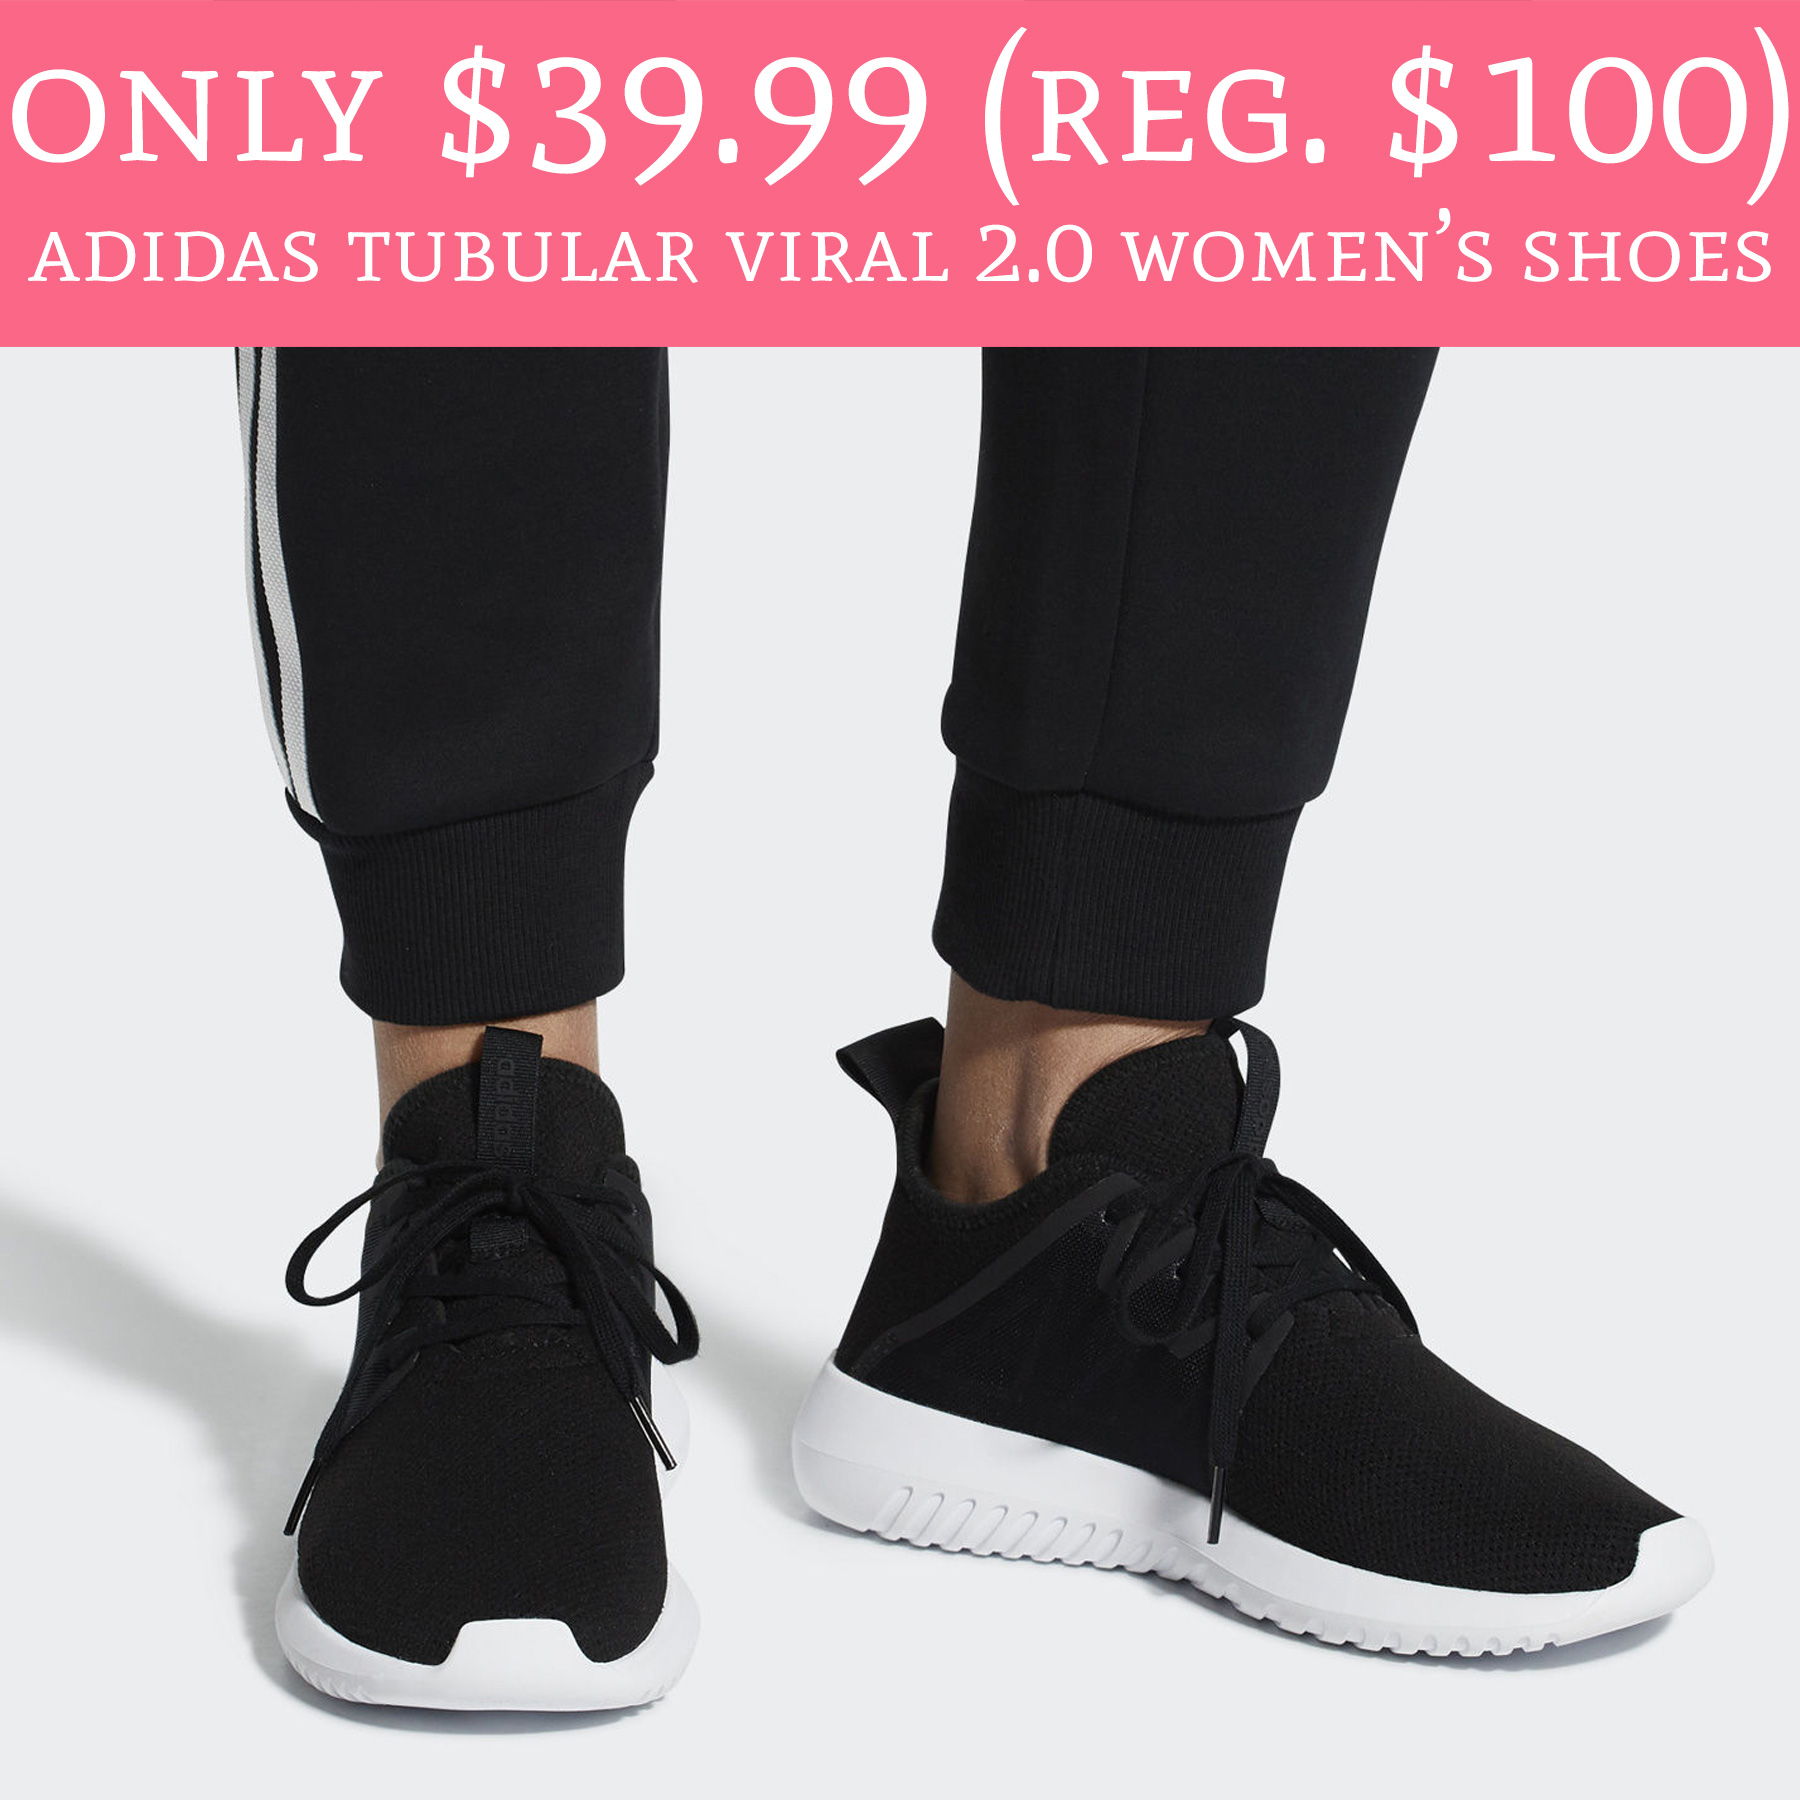 c08a27ae645af3 Great walking or running shoes! Head to ebay.com where the Official Adidas  eBay store is offering Adidas Tubular Viral 2.0 Women s ...